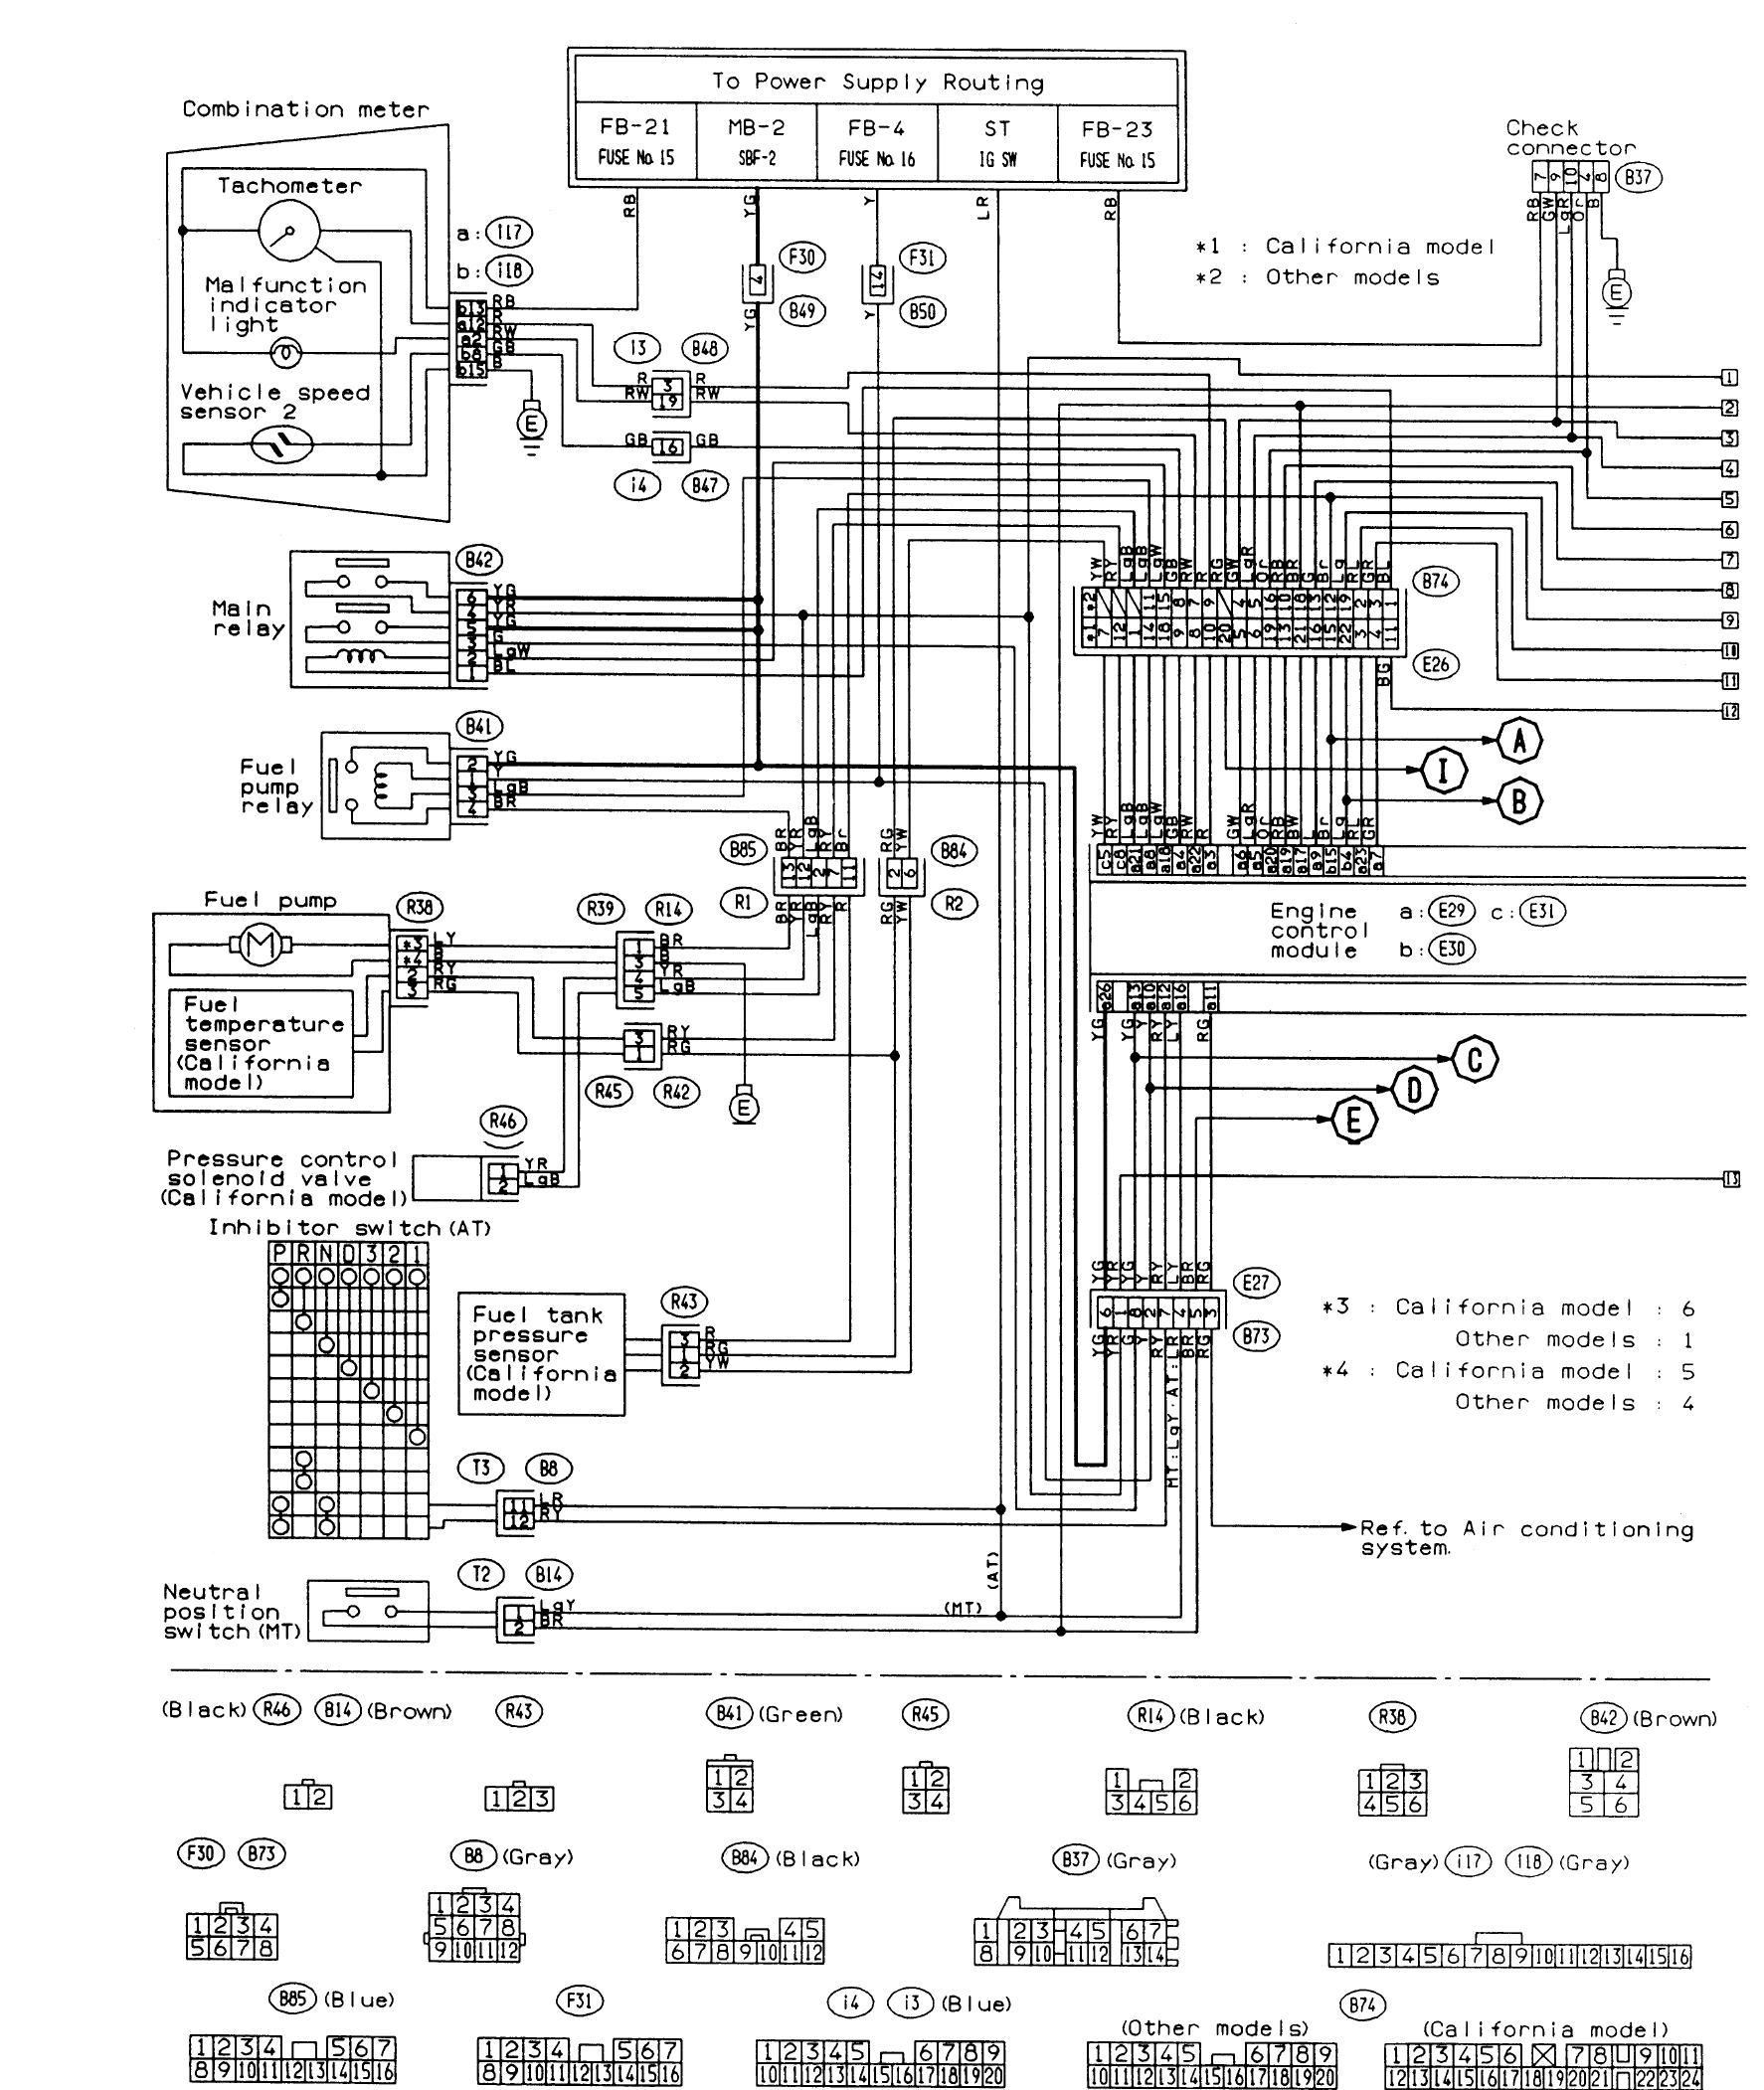 subaru ecu wiring diagram FUSlrCX 1995 impreza wiring diagram on 1995 download wirning diagrams on 2002 wrx wiring harness diagram